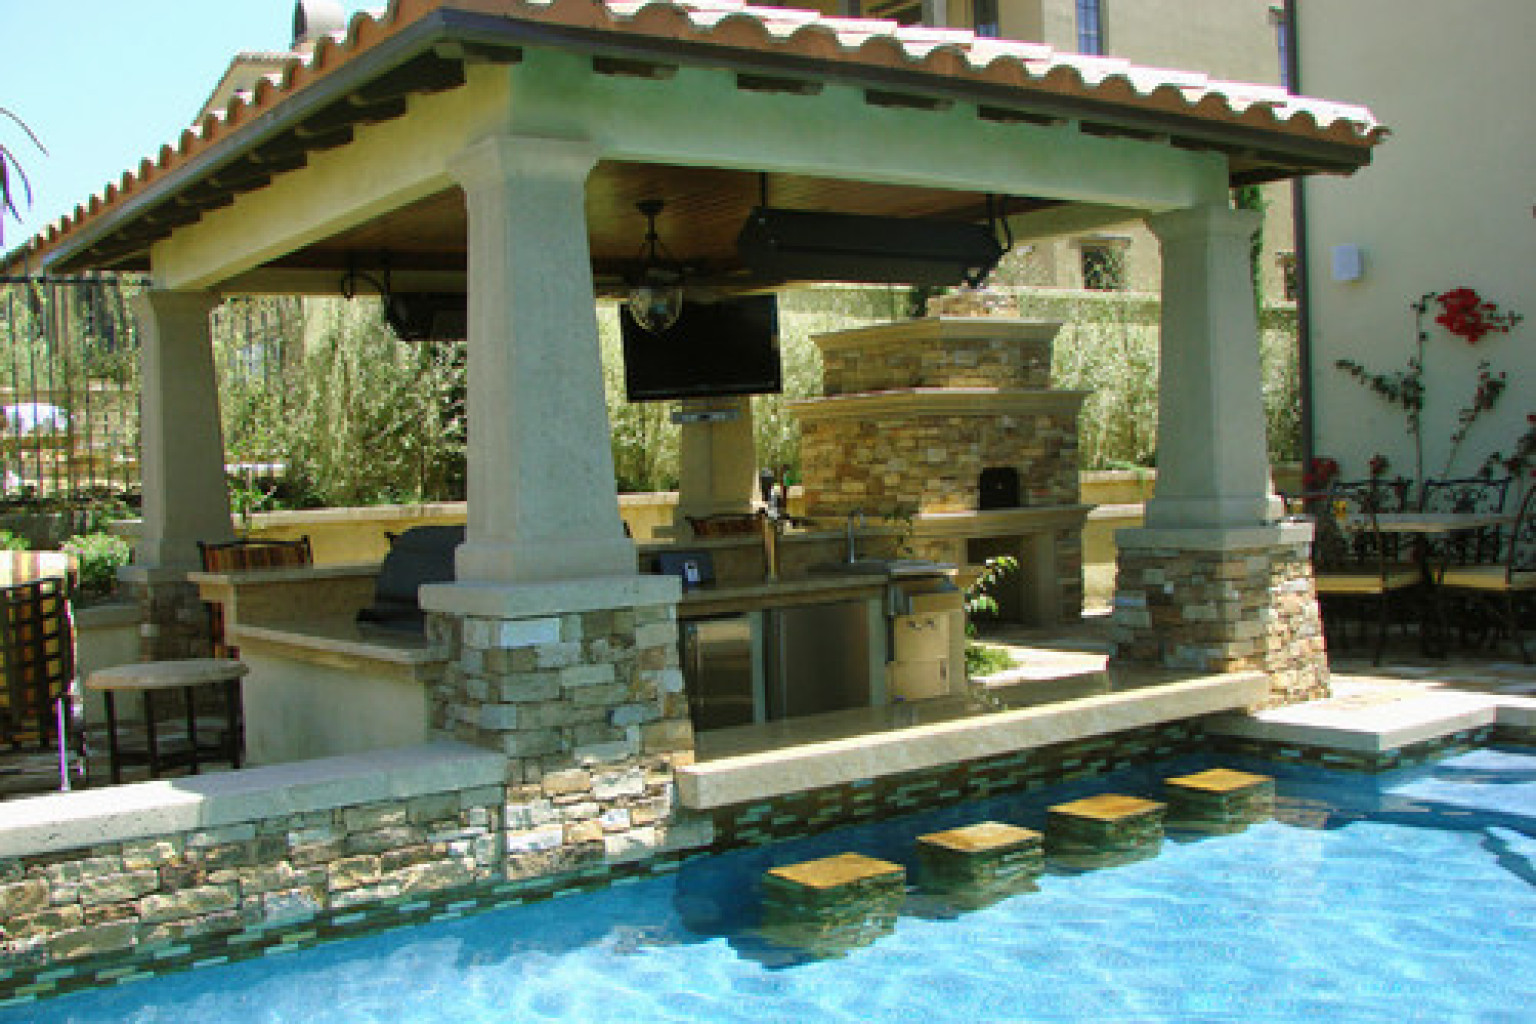 Home indoor pool with bar  Modren Indoor Pool Bar Swimming With A In Design - Miaowan.co